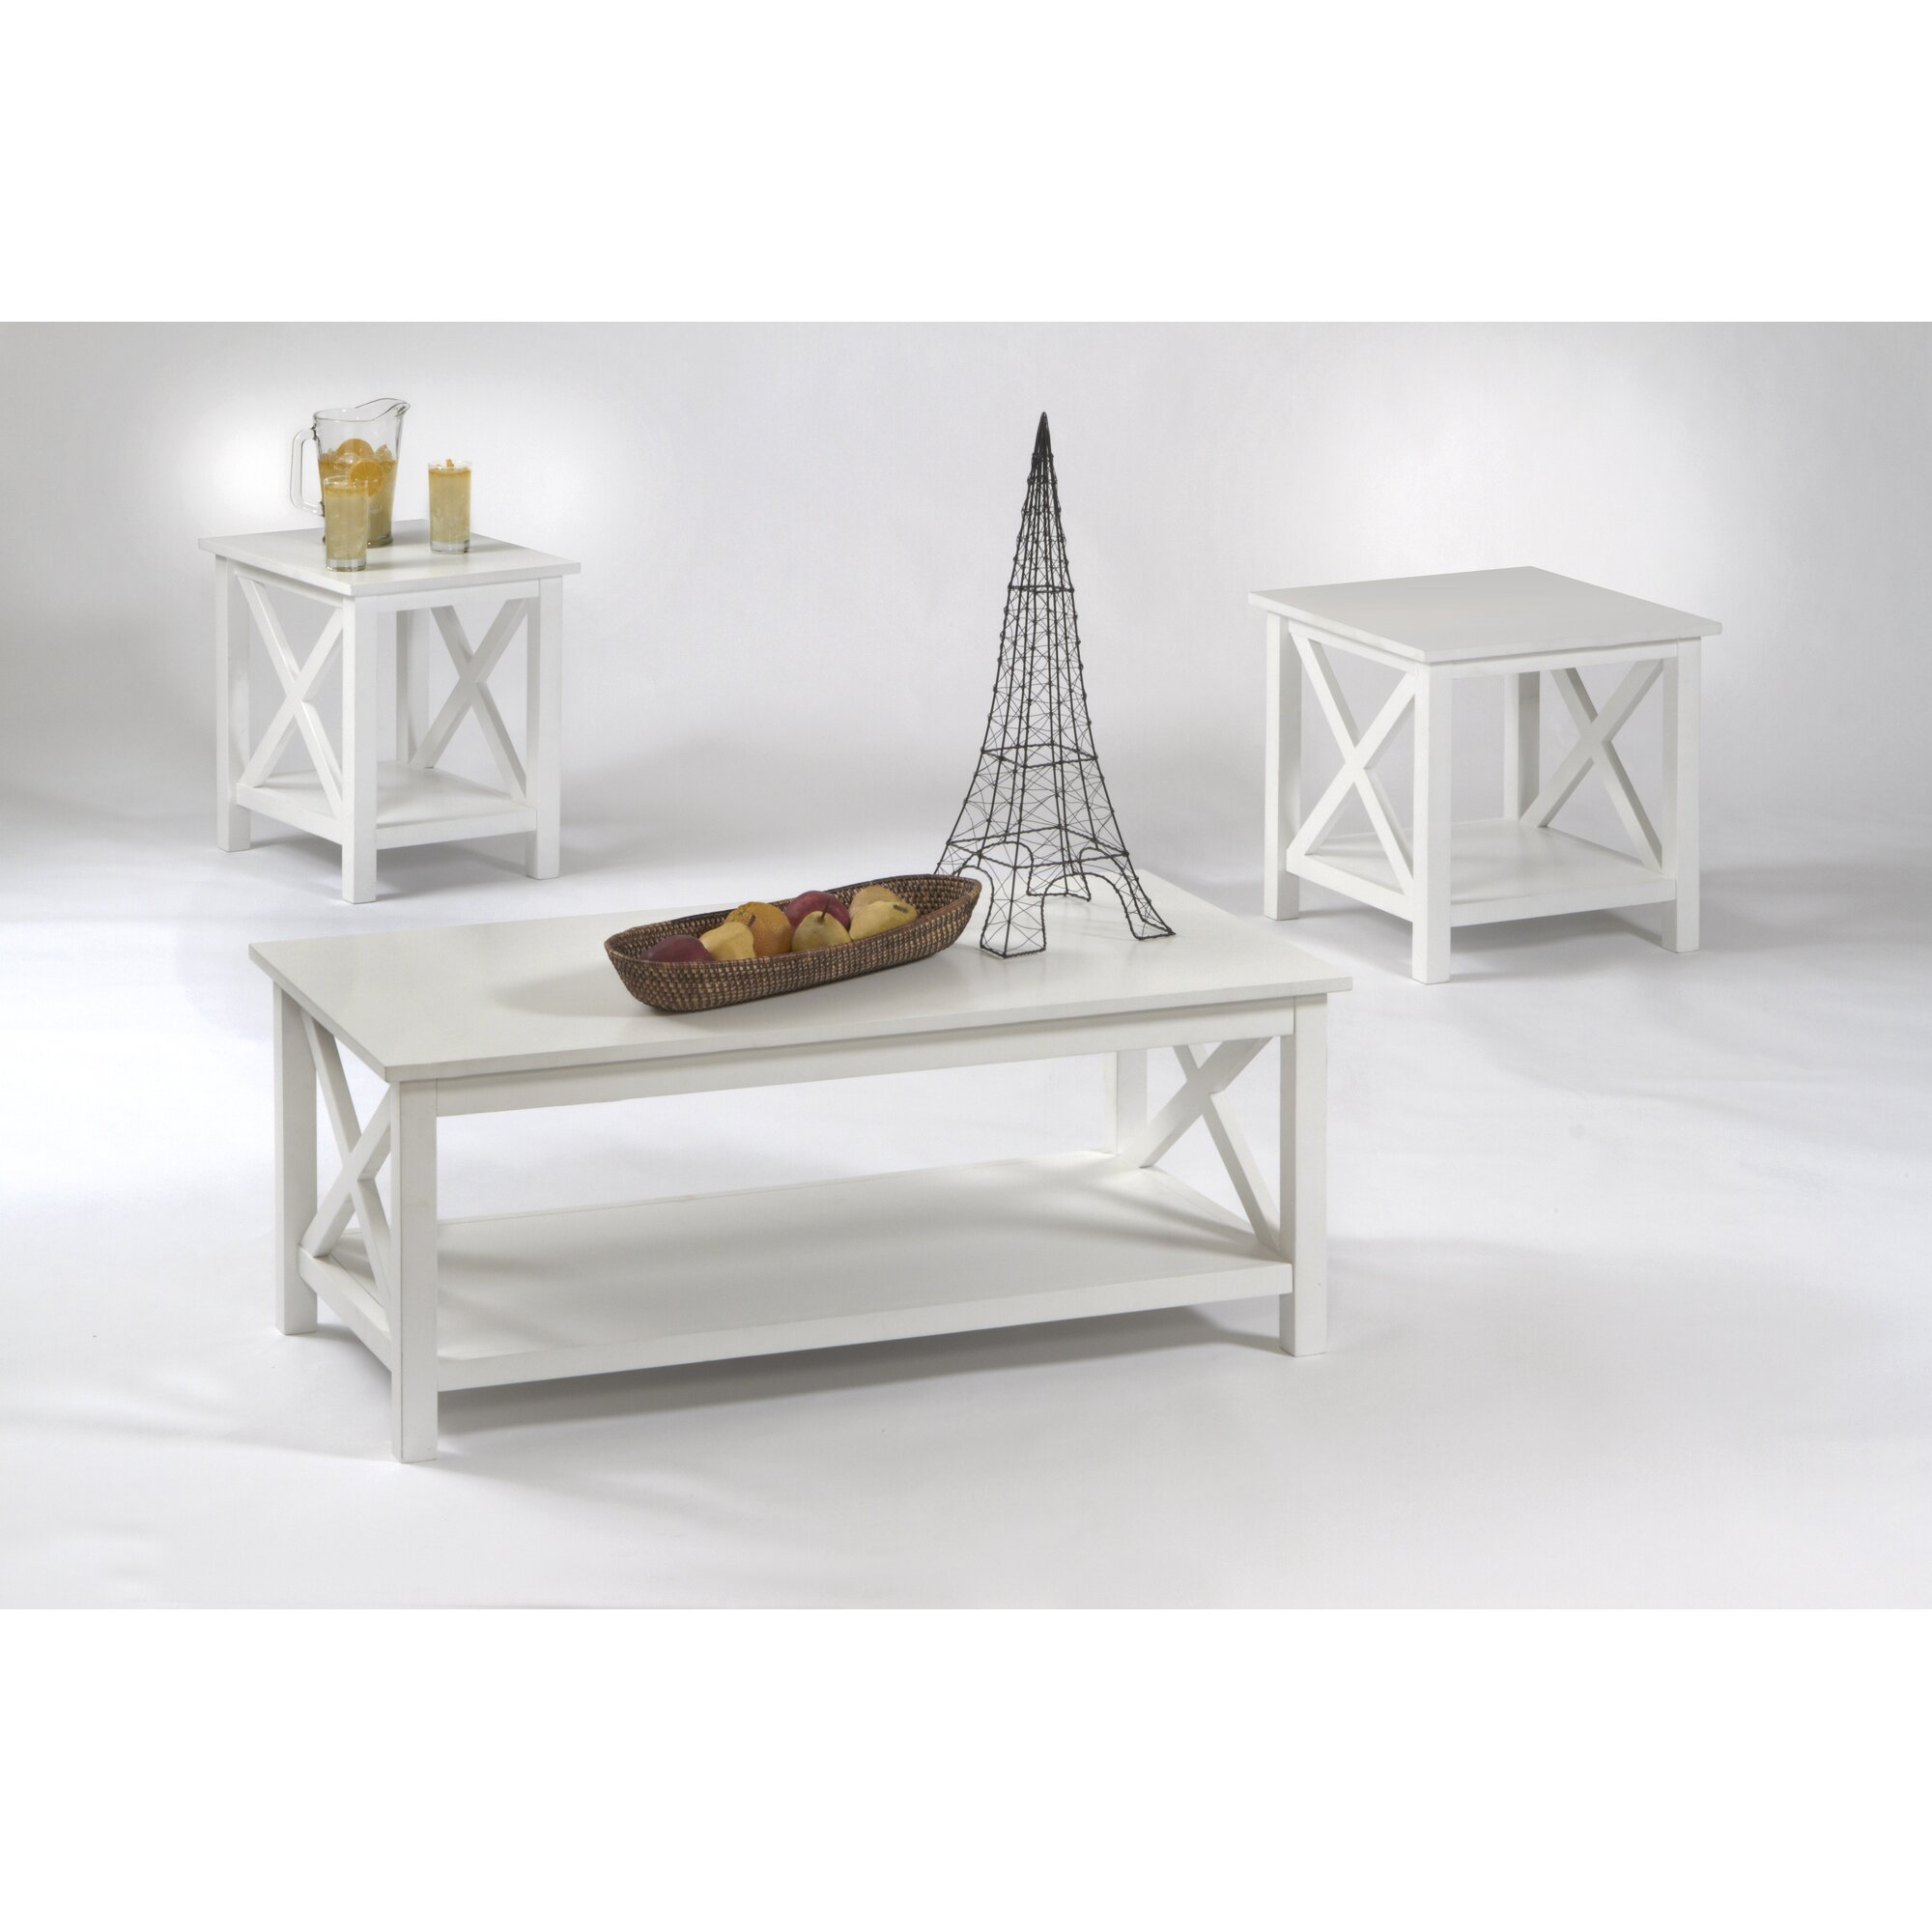 Captivating Beadboard Coffee Table